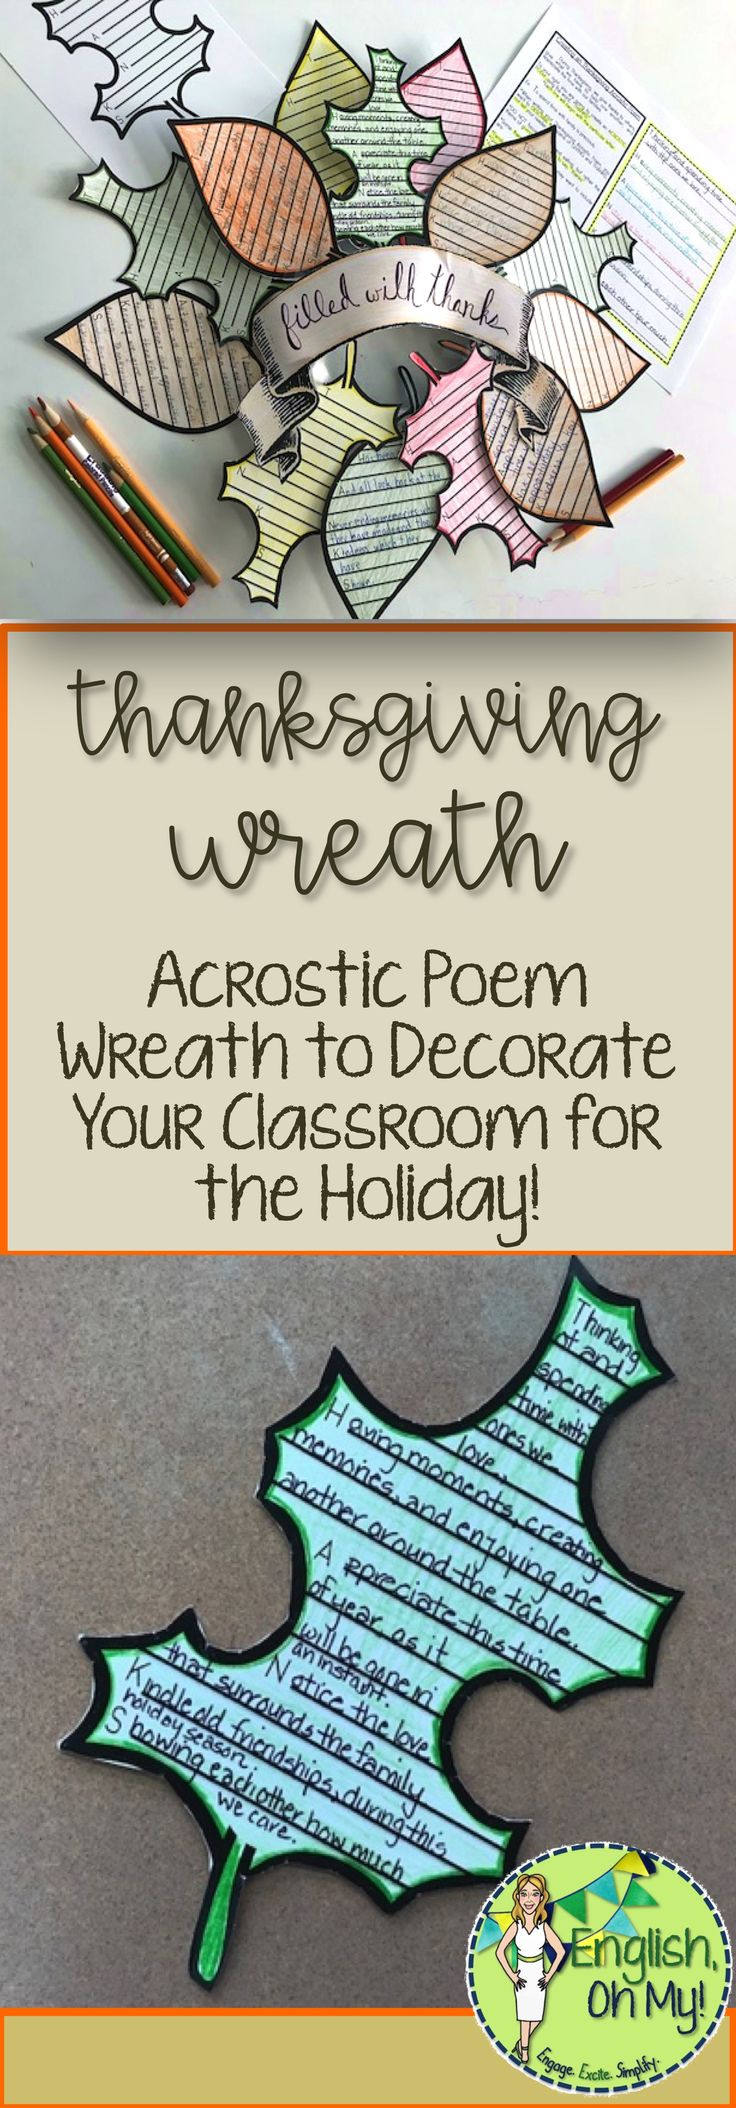 Are you looking for a Thanksgiving activity to decorate your door, window or board?  Check out this Acrostic Poem Wreath!  This engaging activity has your students writing poems and decorating your classroom!